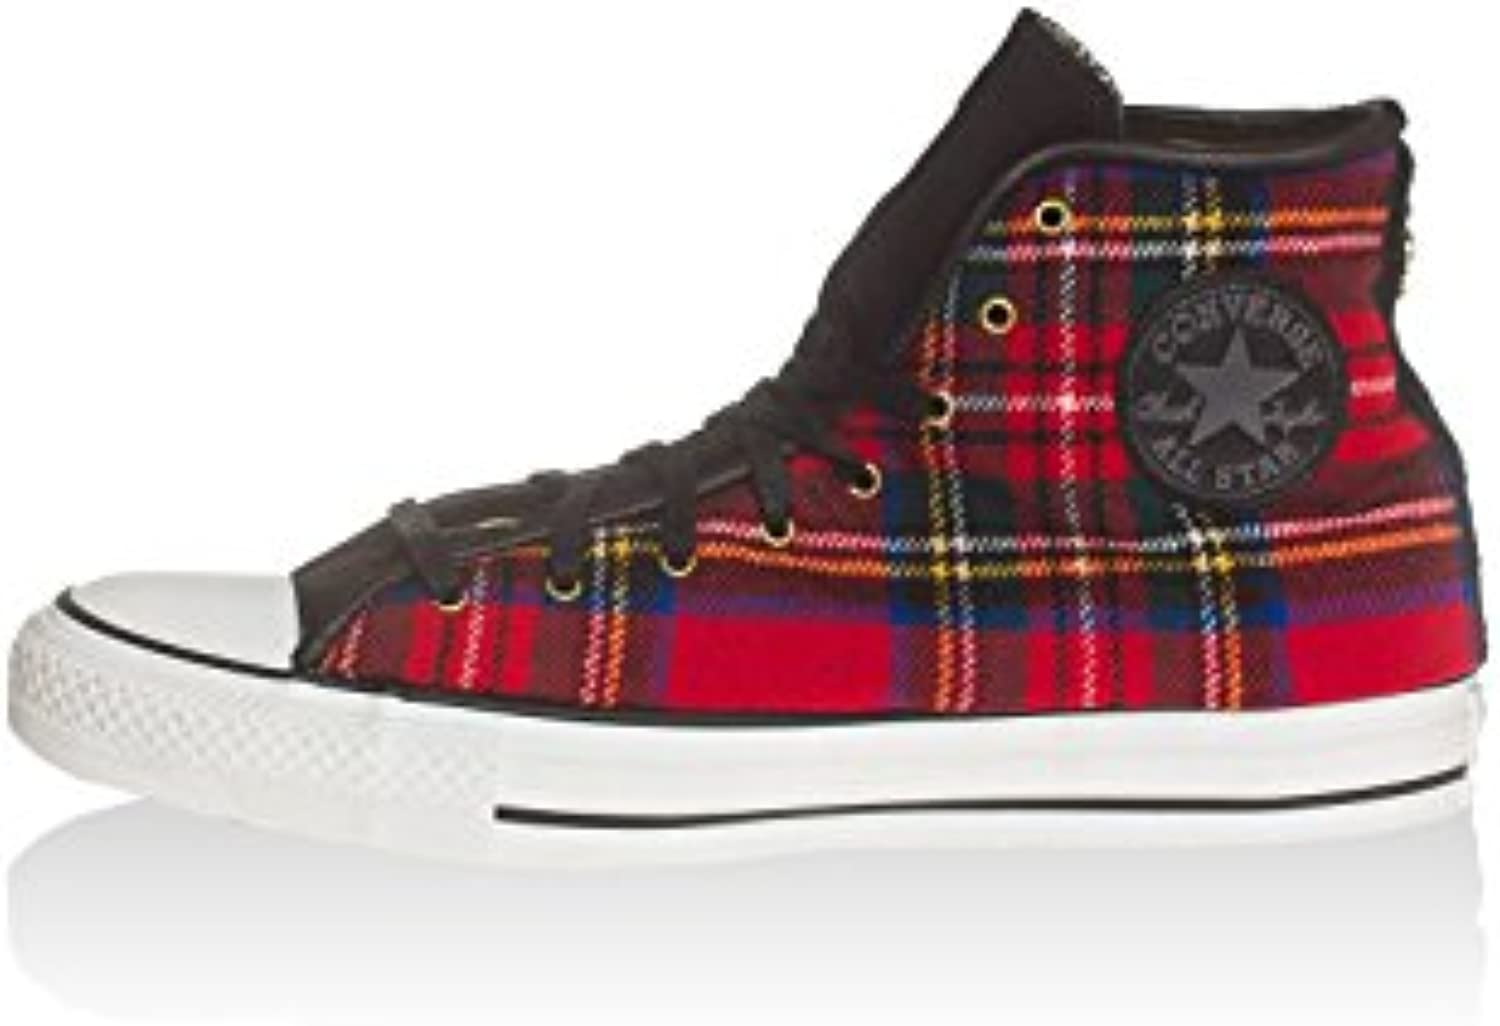 Converse All Star Hi Canvas TXT LTD Limited Edition